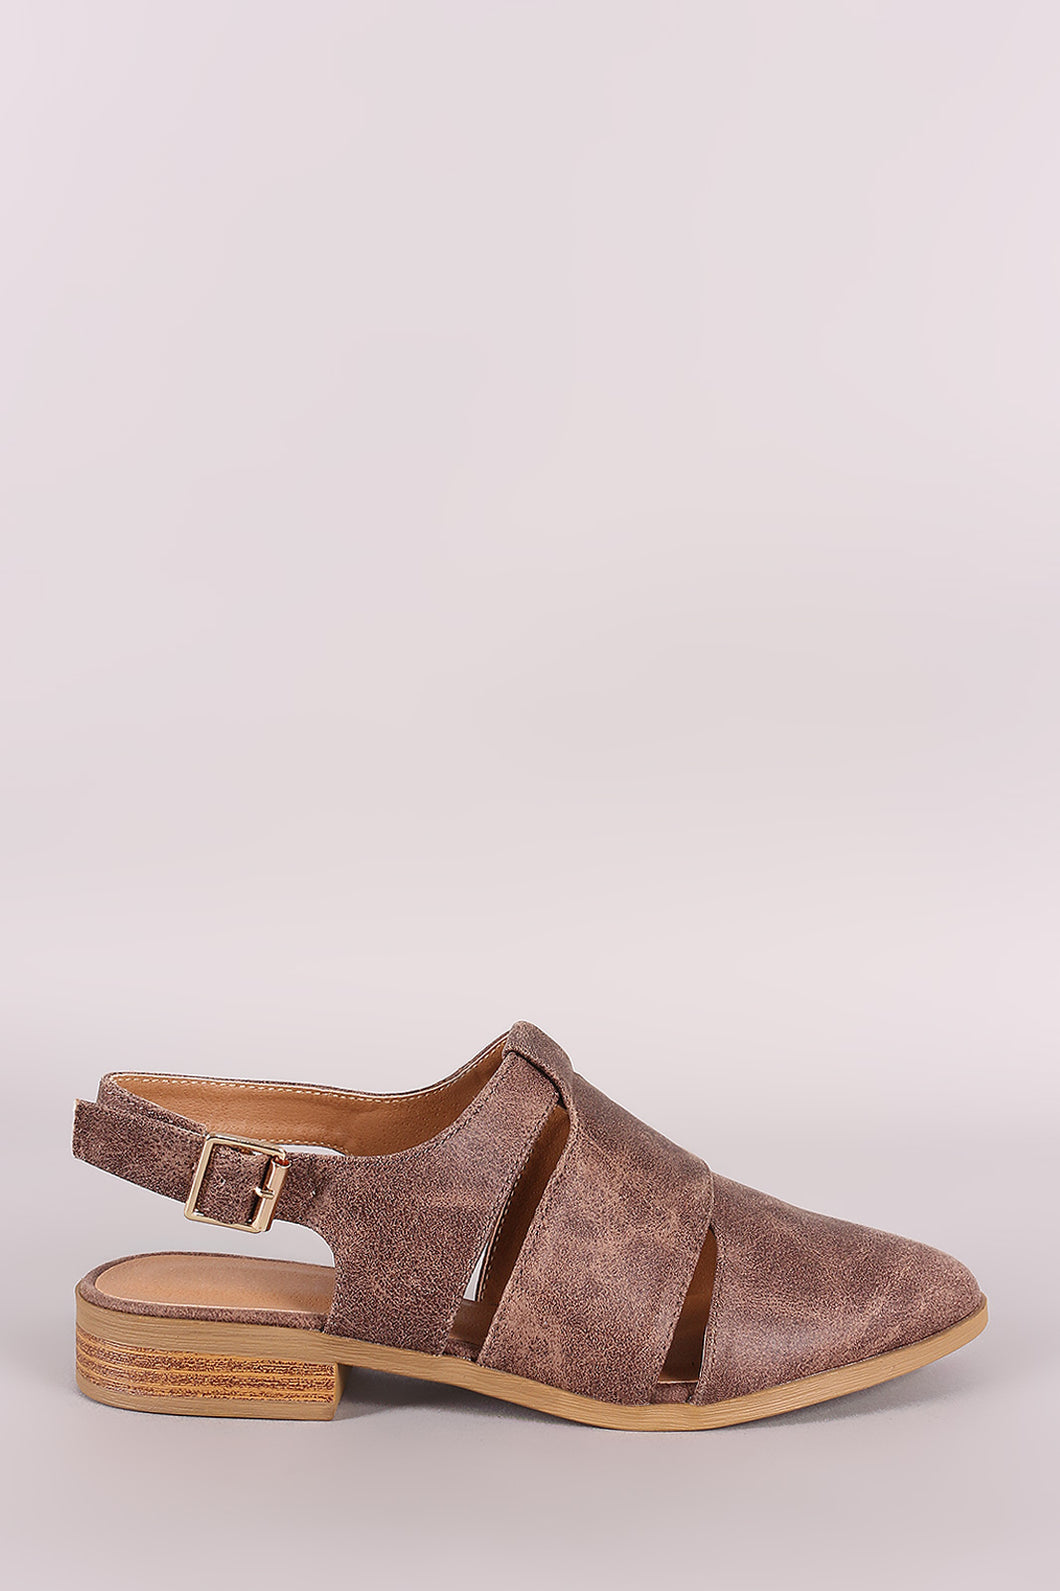 Qupid Slit Mule Block Heel Flat - visitors